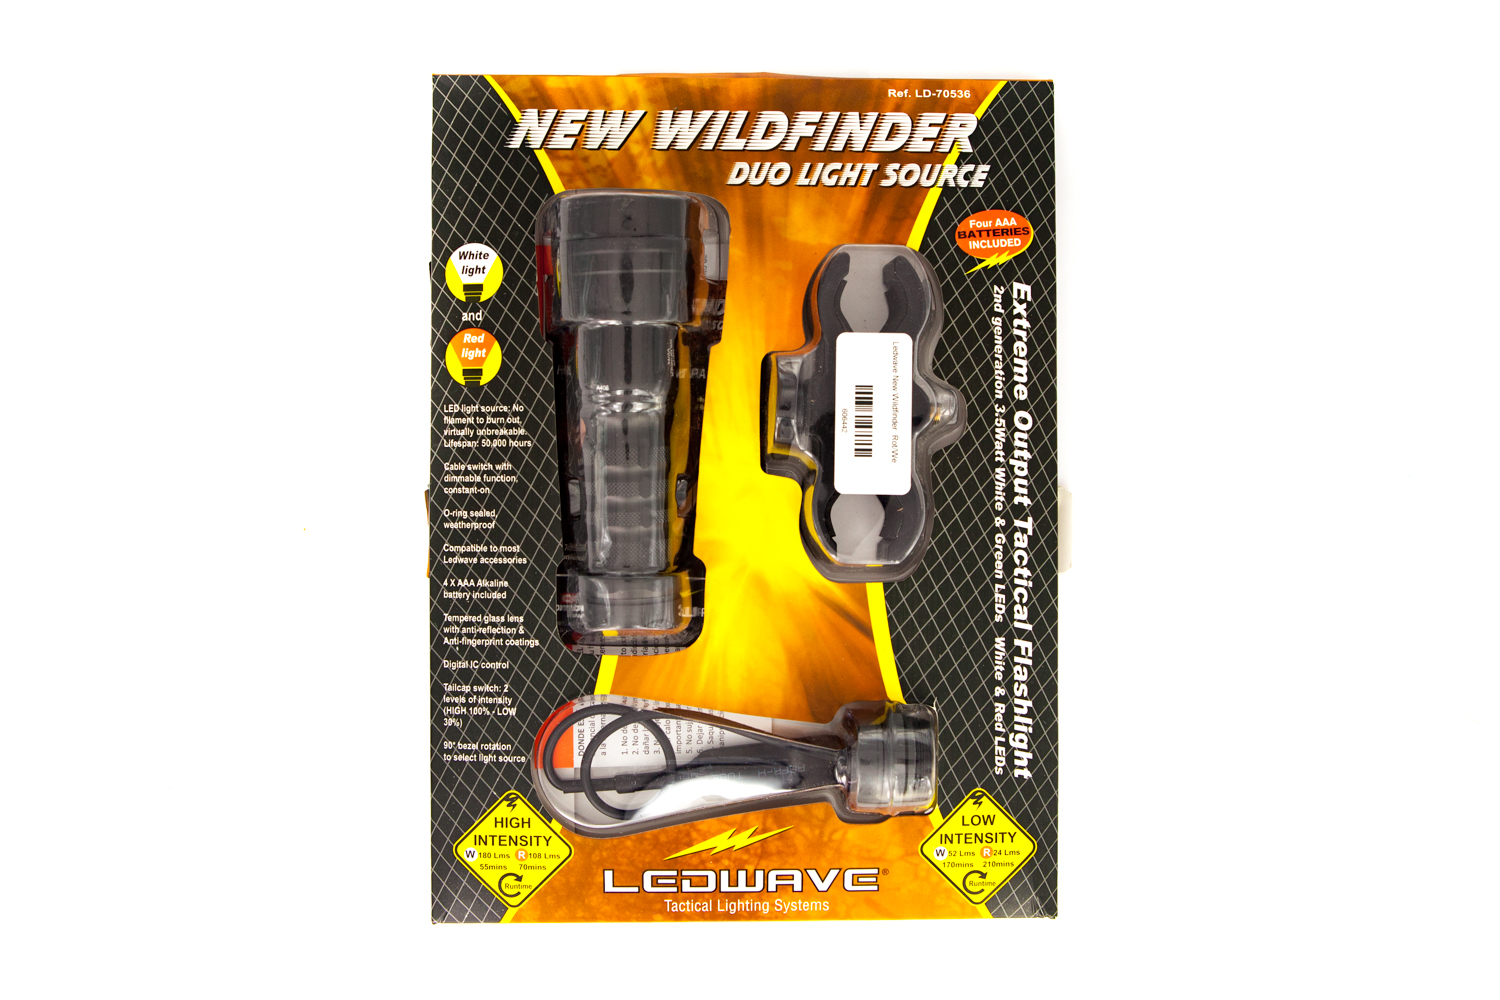 Ledwave New Wildfinder